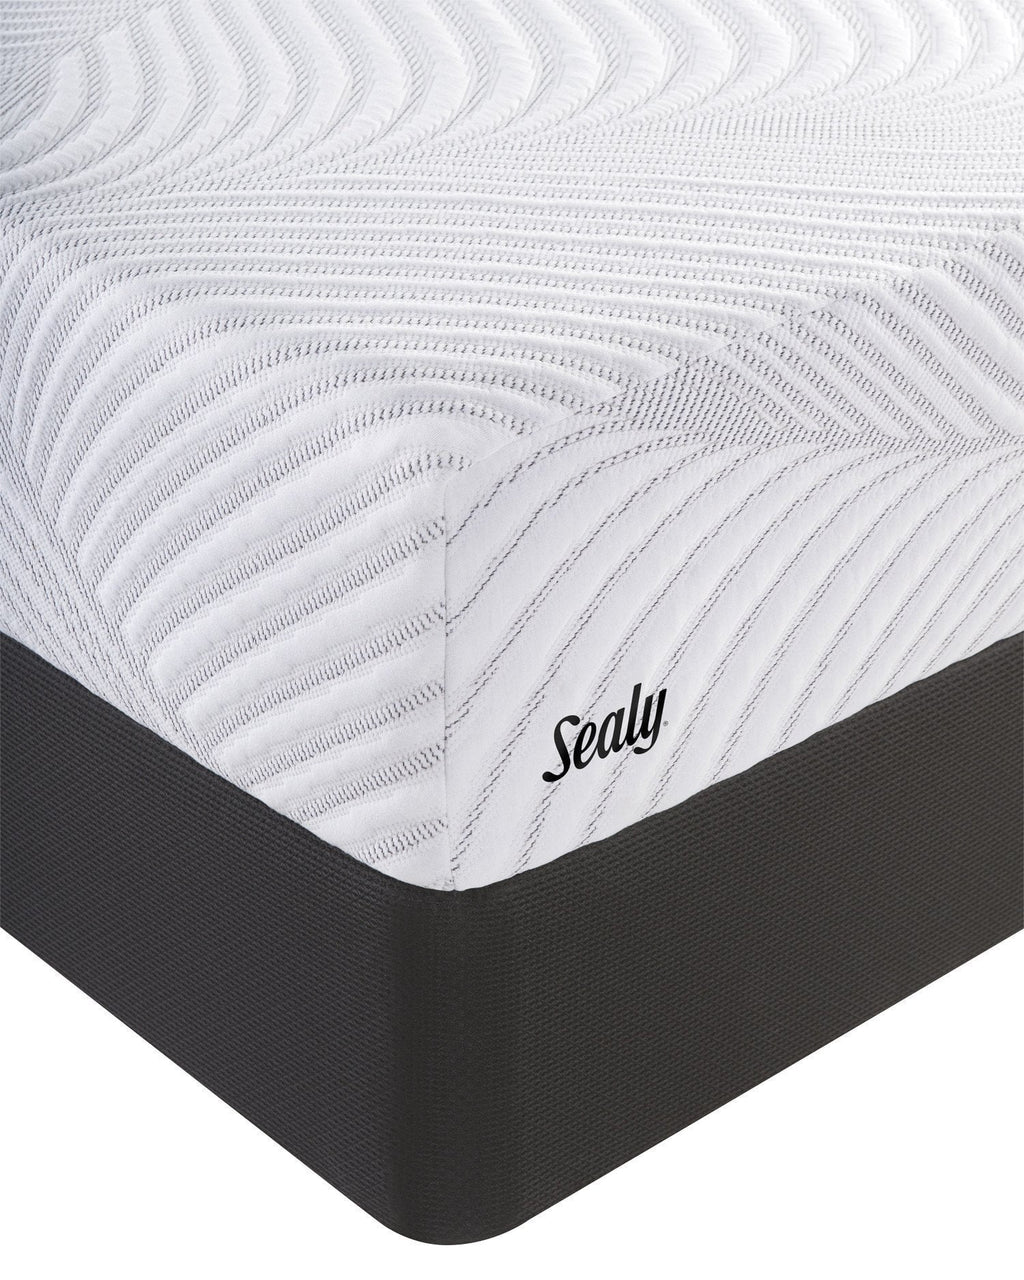 Sealy Gel Memory Foam King Mattress - Save on Mattresses Outlet